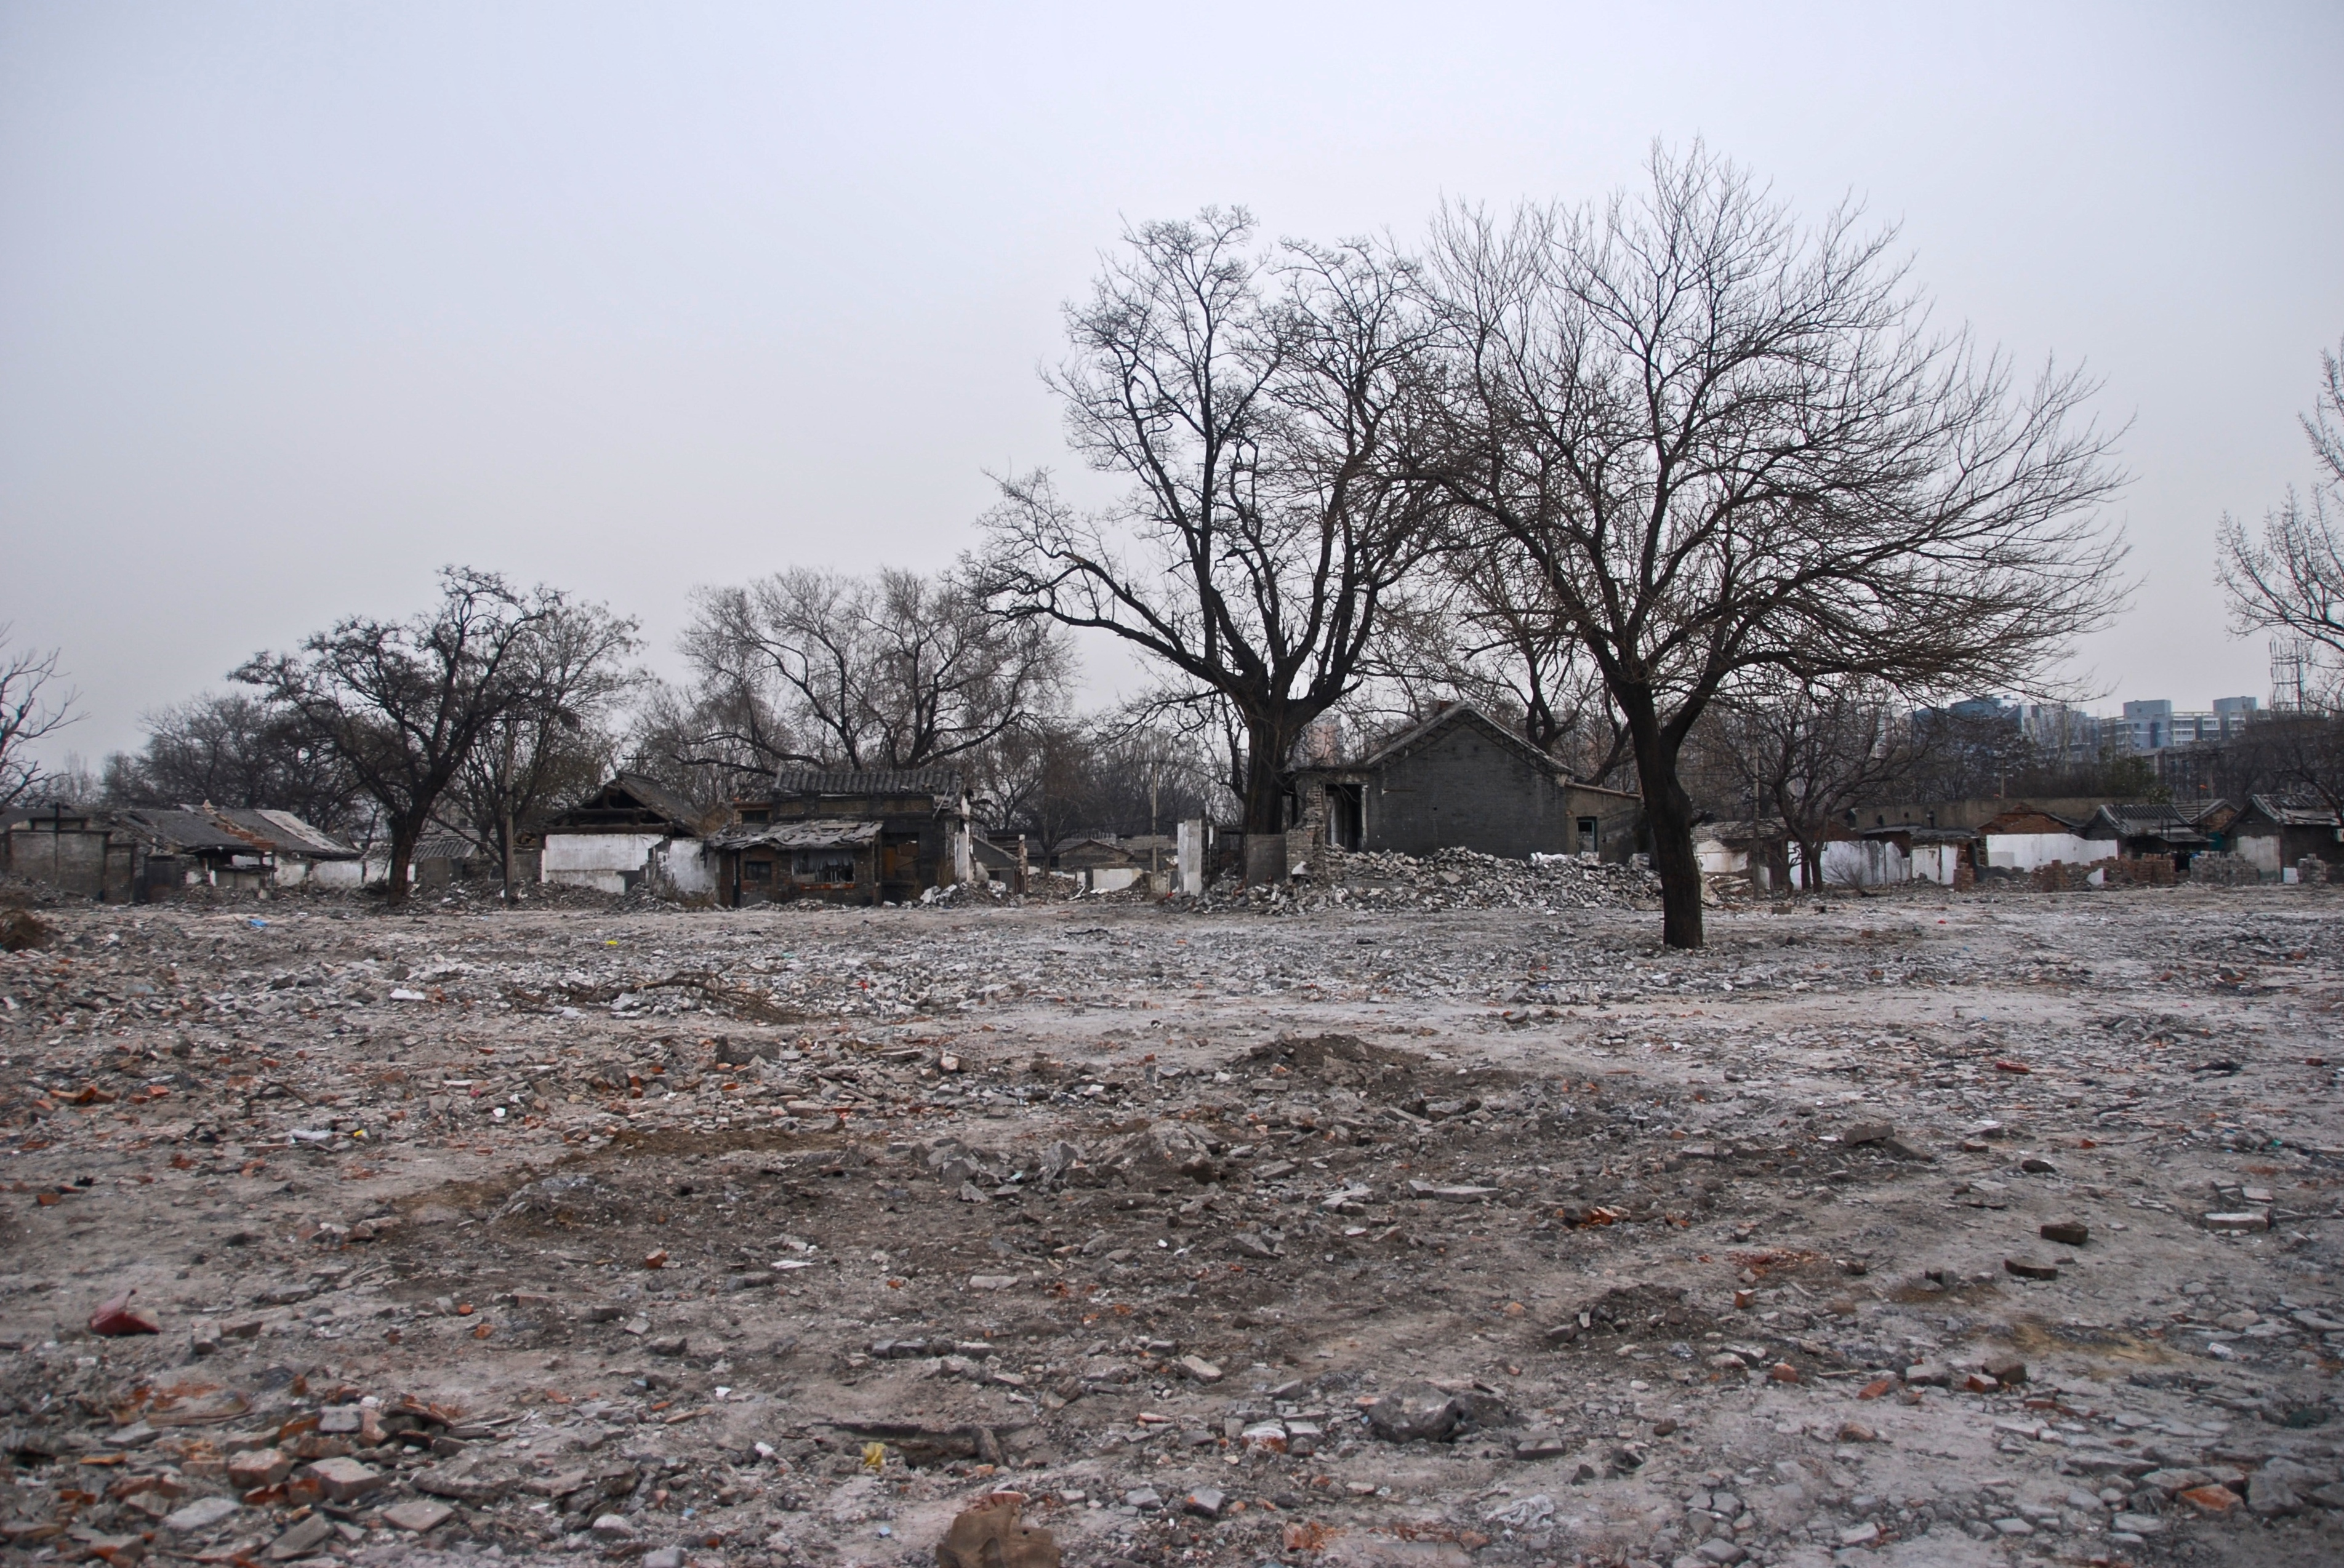 http://upload.wikimedia.org/wikipedia/commons/8/85/Hutong_Barren_Wasteland.jpg